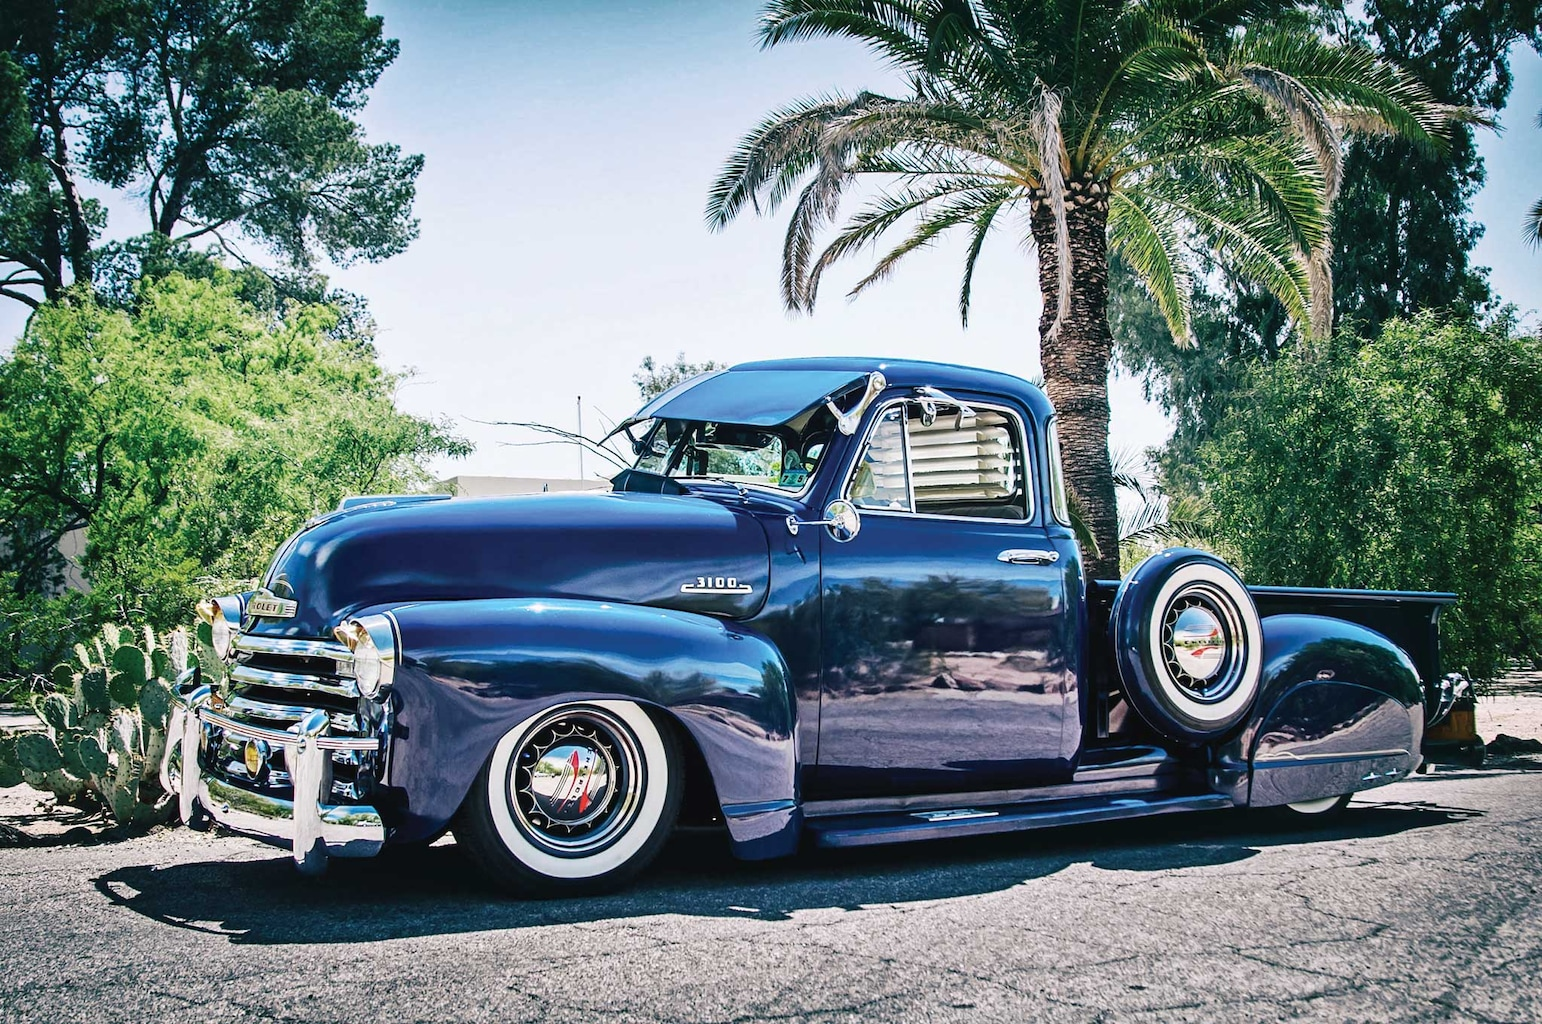 1953 Chevrolet 235 Pickup Truck Of The Month Lowrider